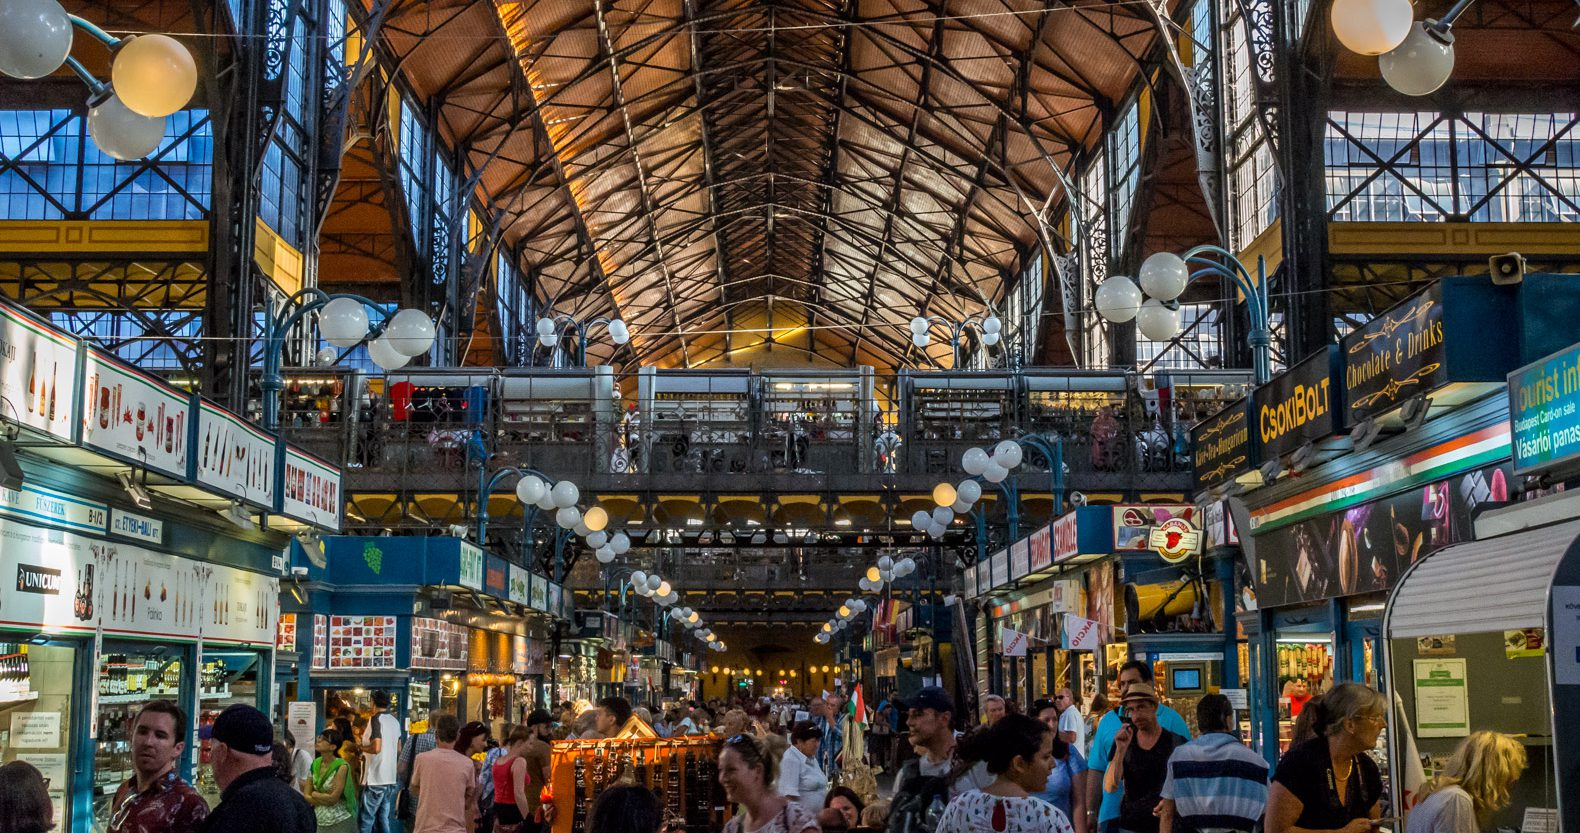 Budapest things to do: the central market hall